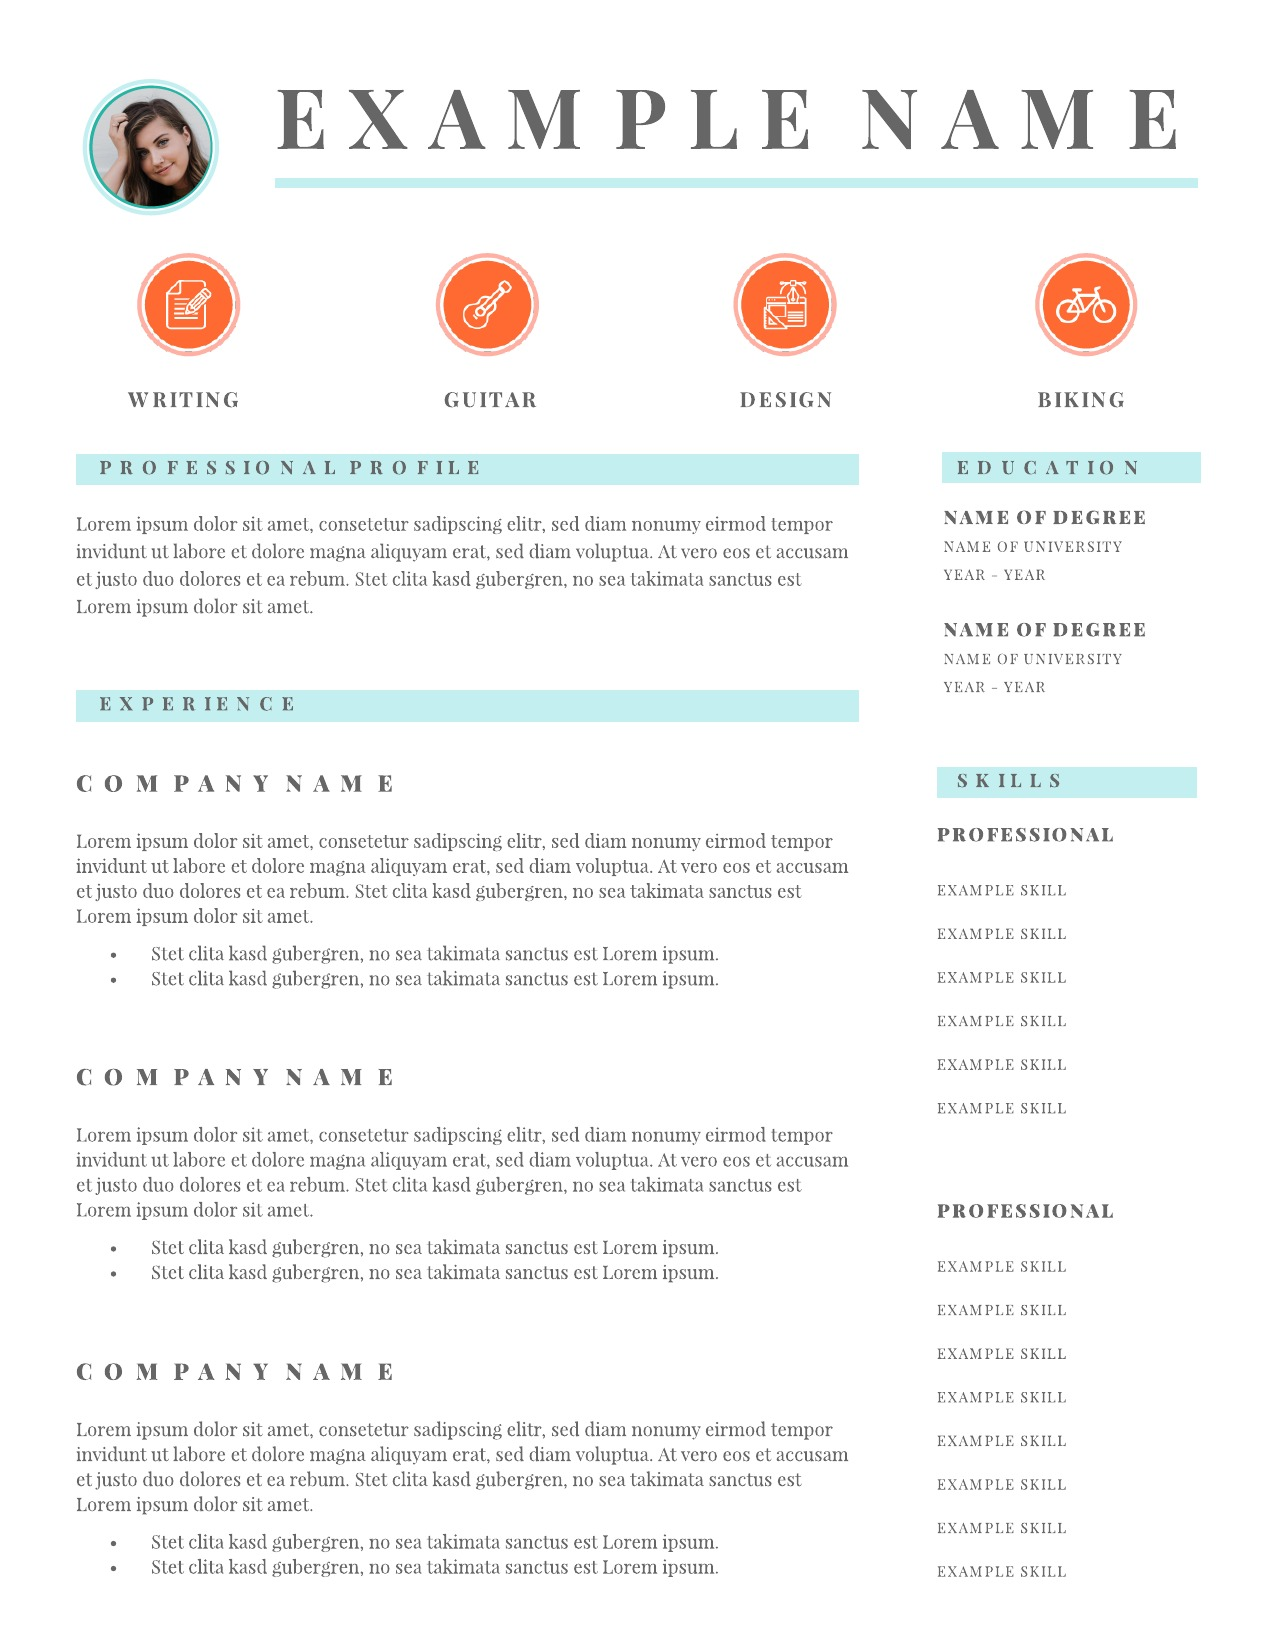 Airy icons infographic resume | Lucidpress